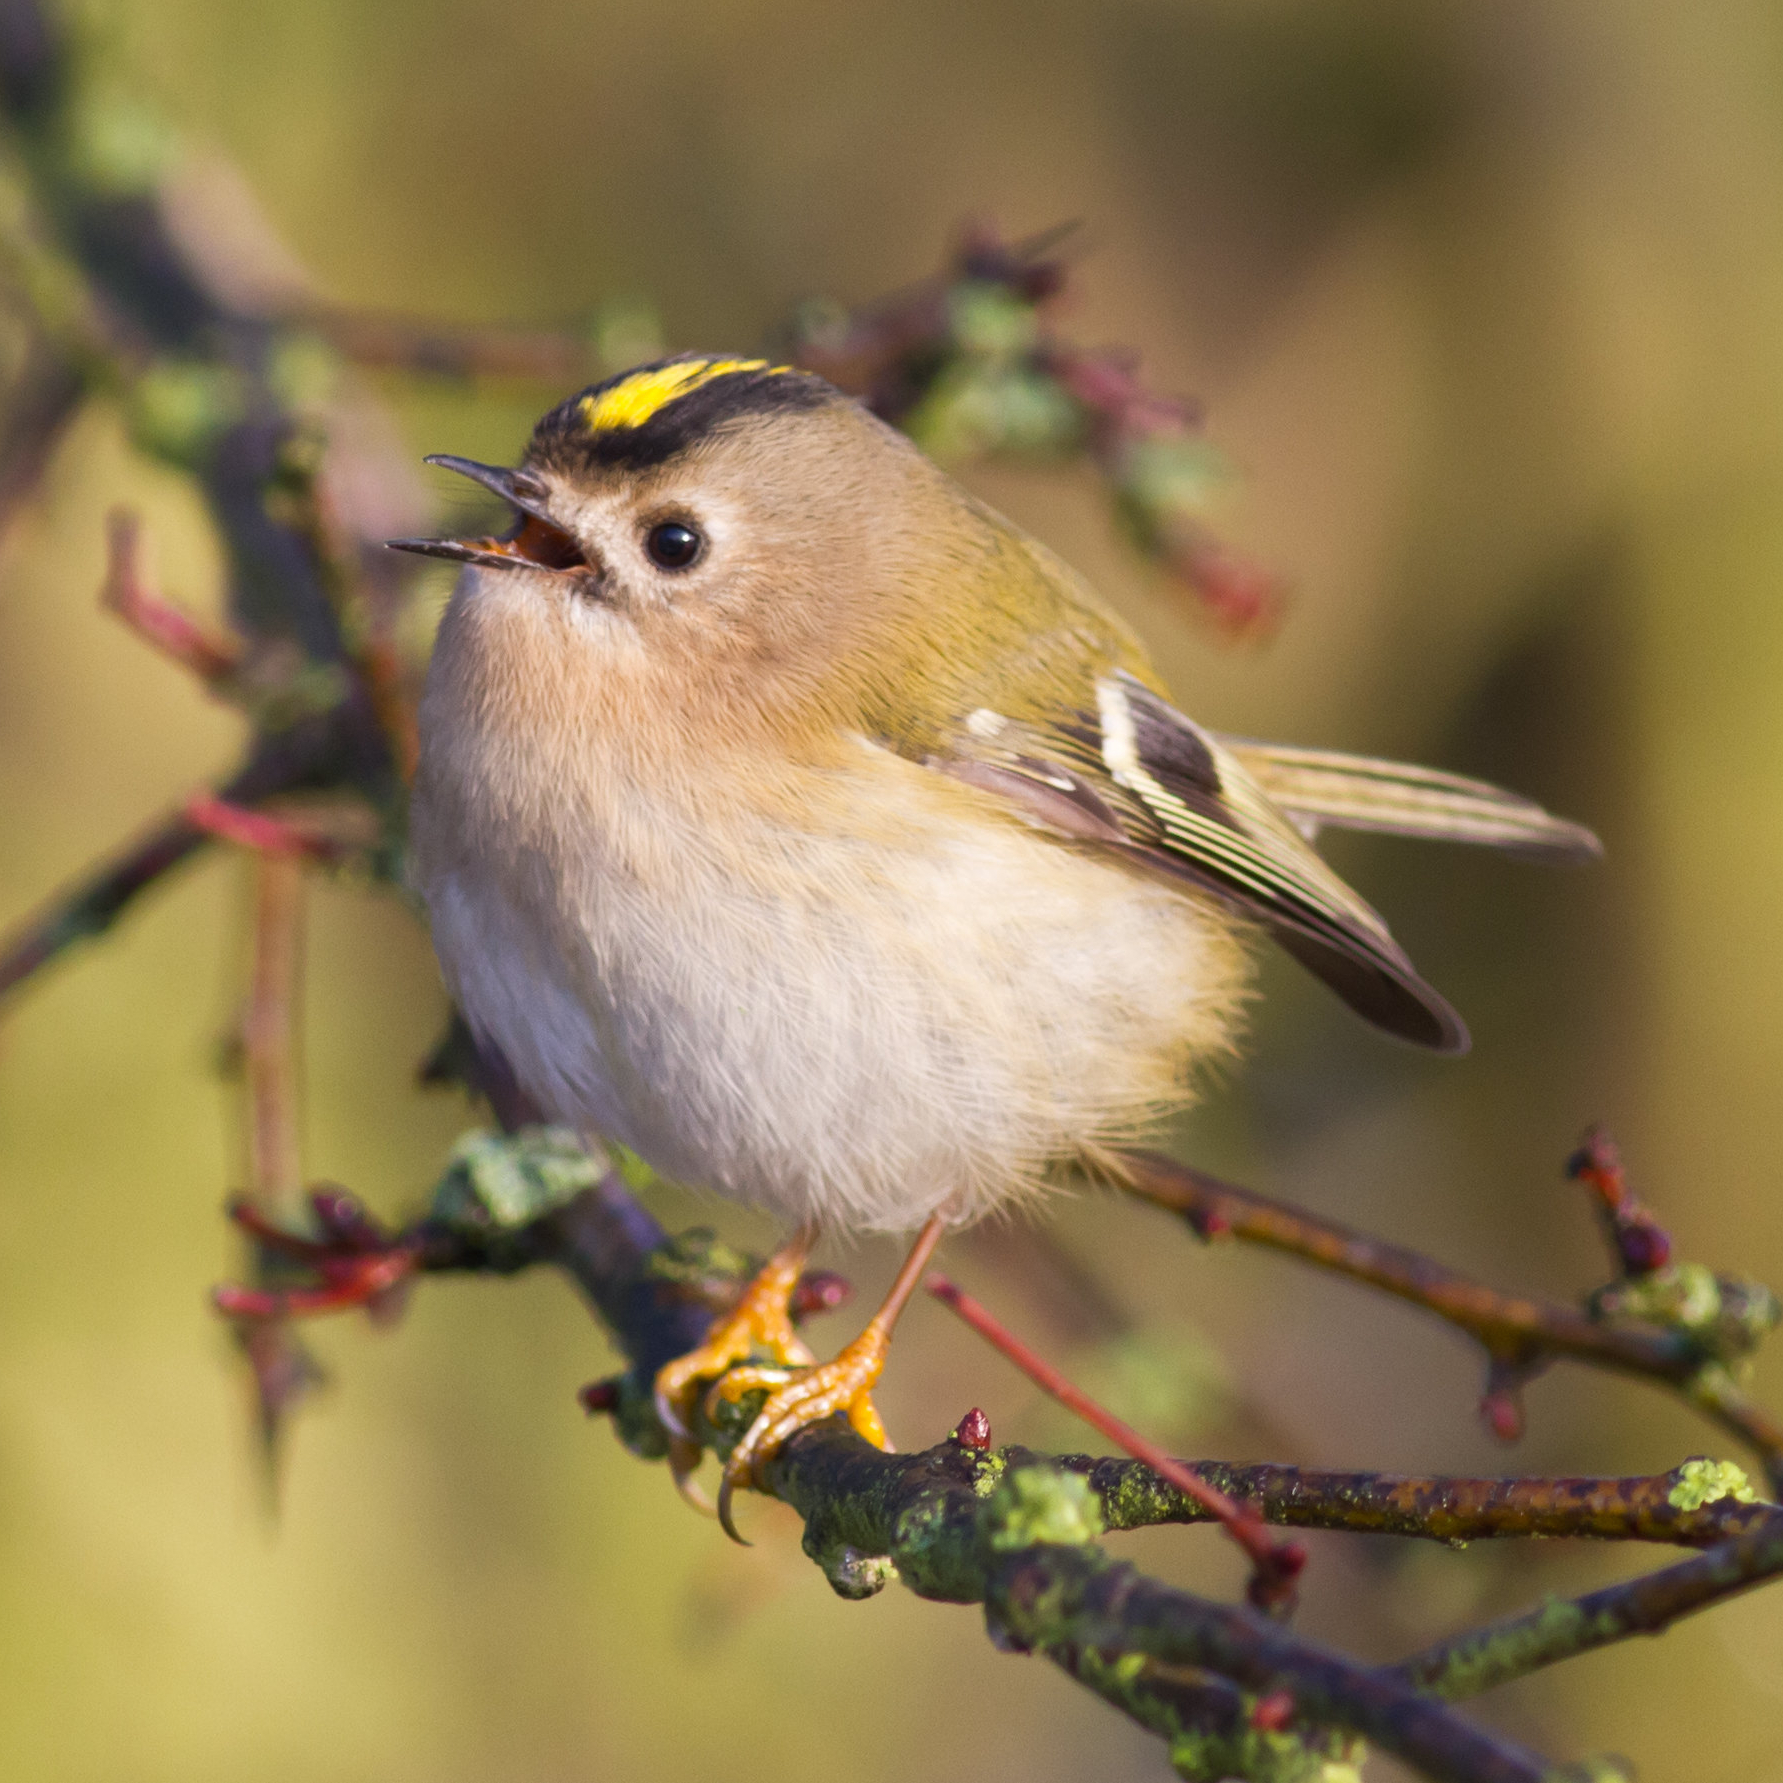 Goldcrest perched on a branch